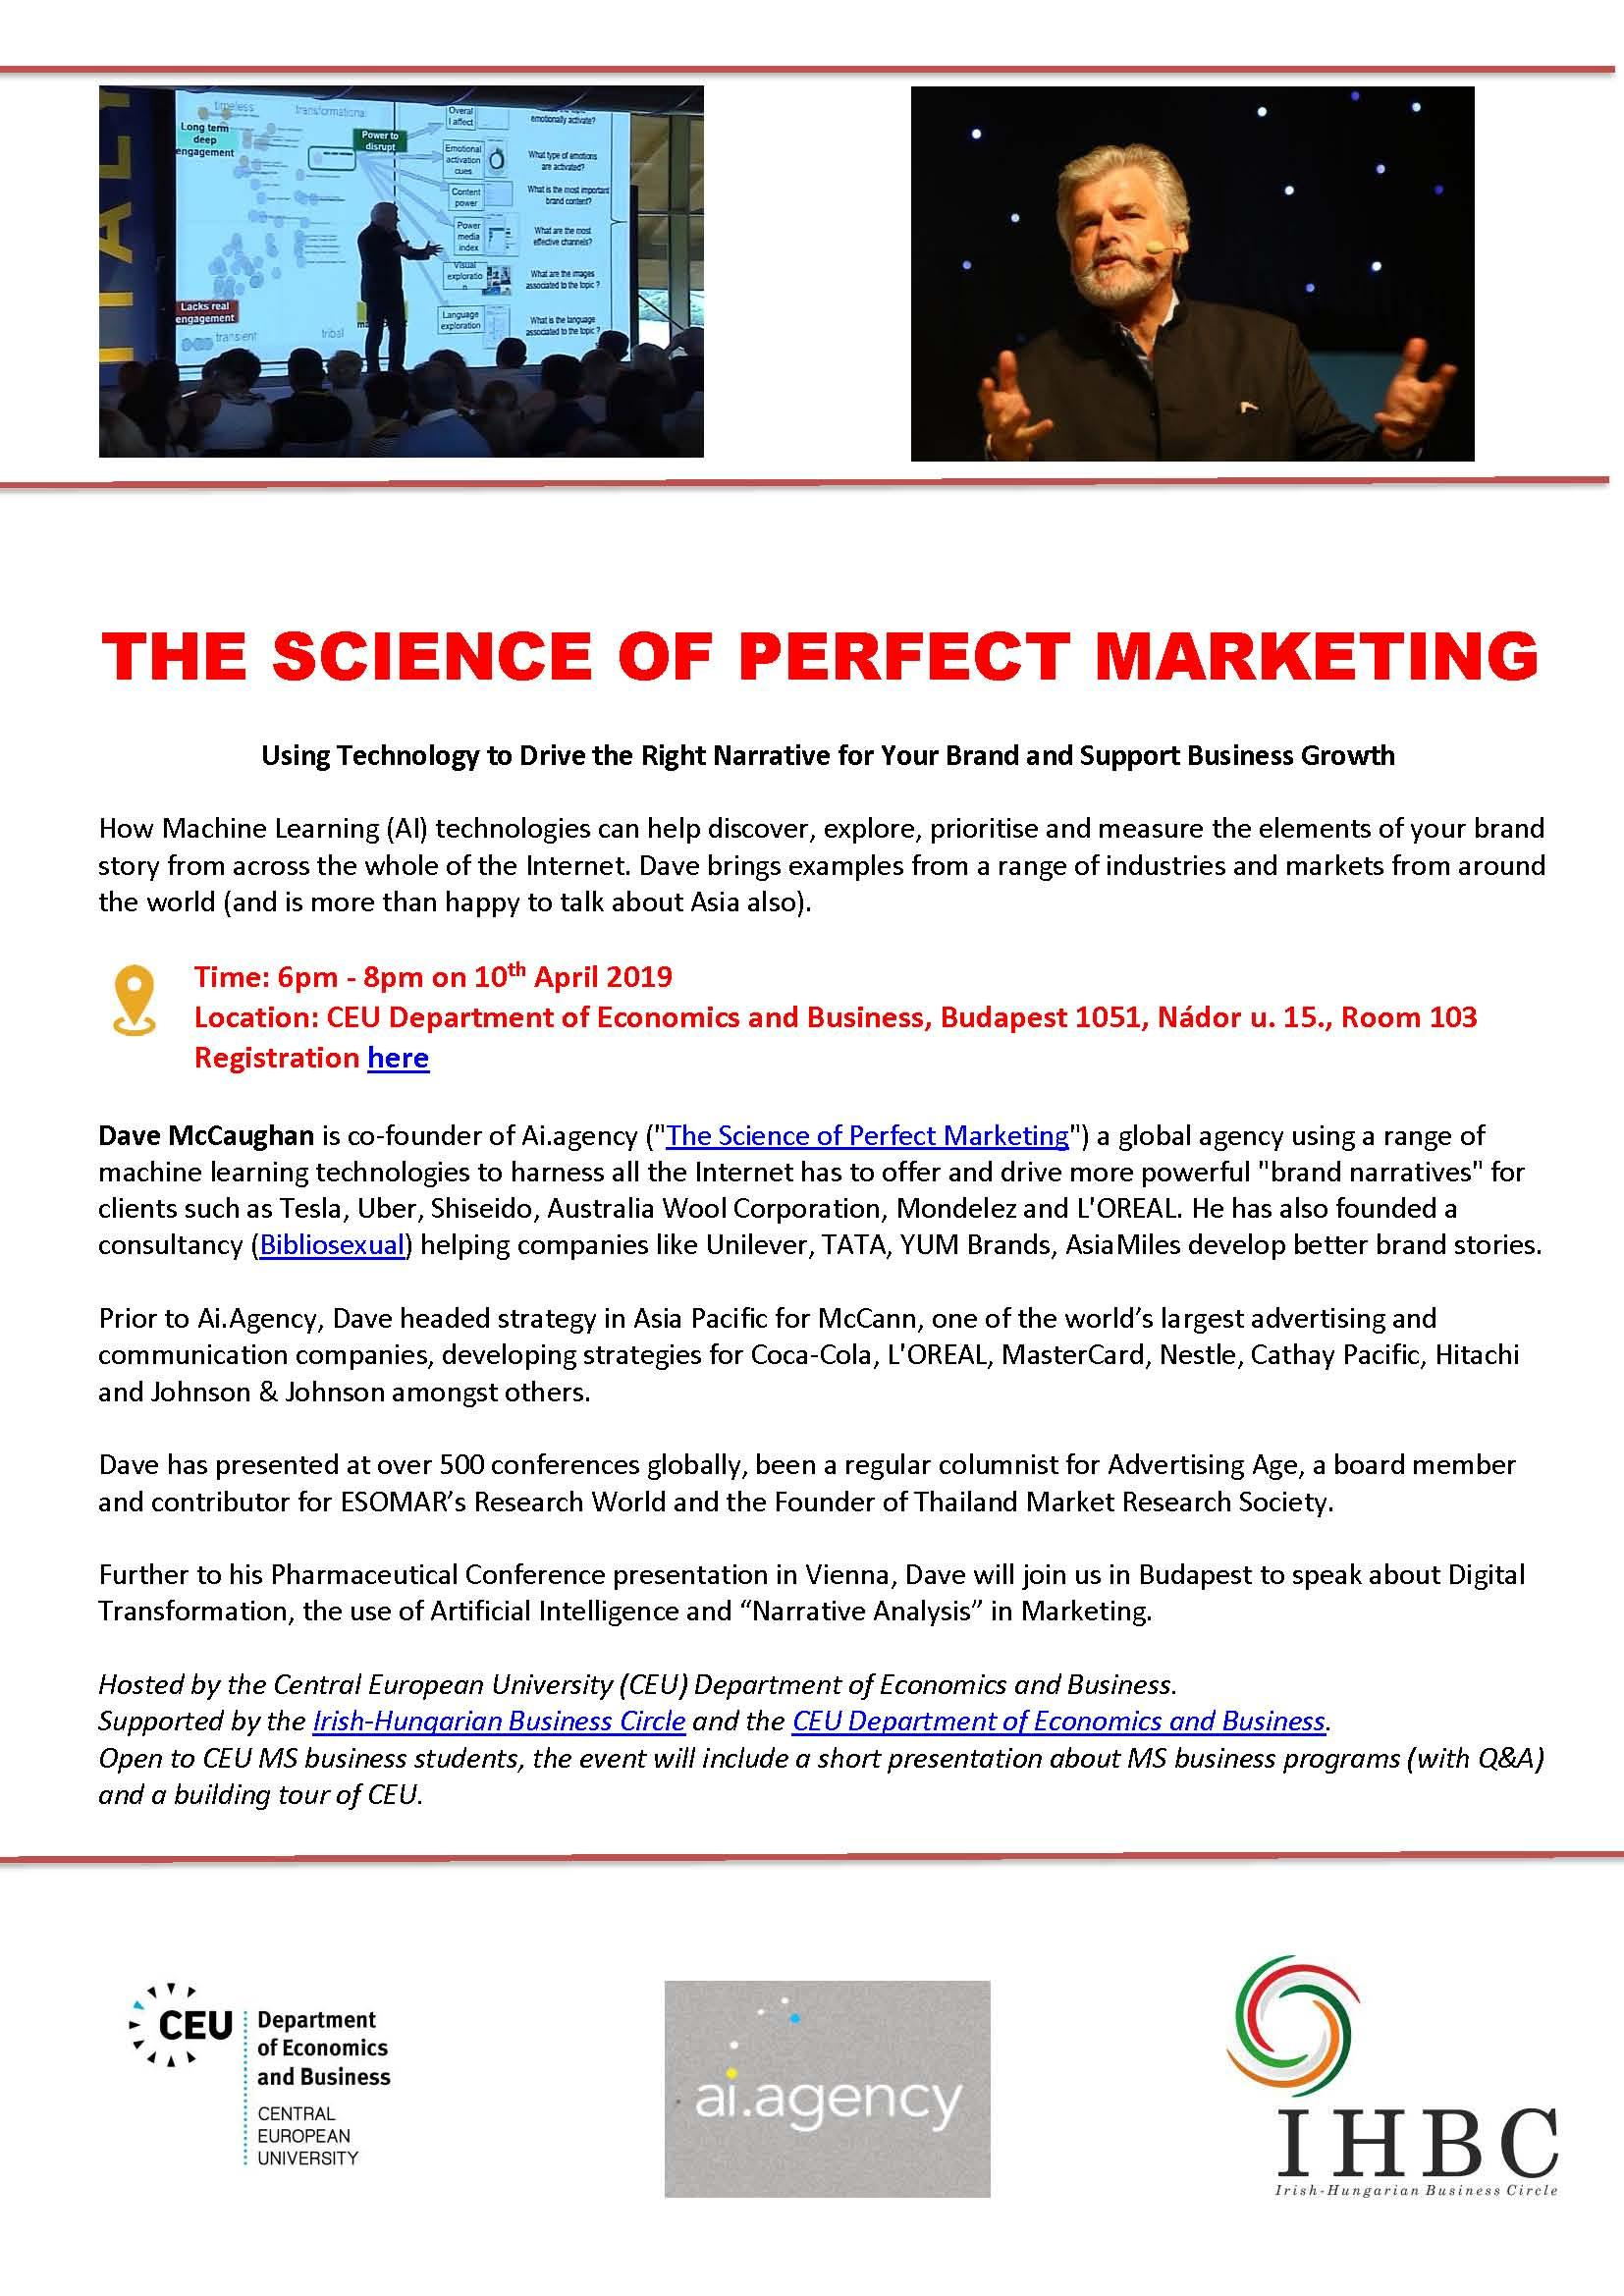 The Science of Perfect Marketing | Department of Economics